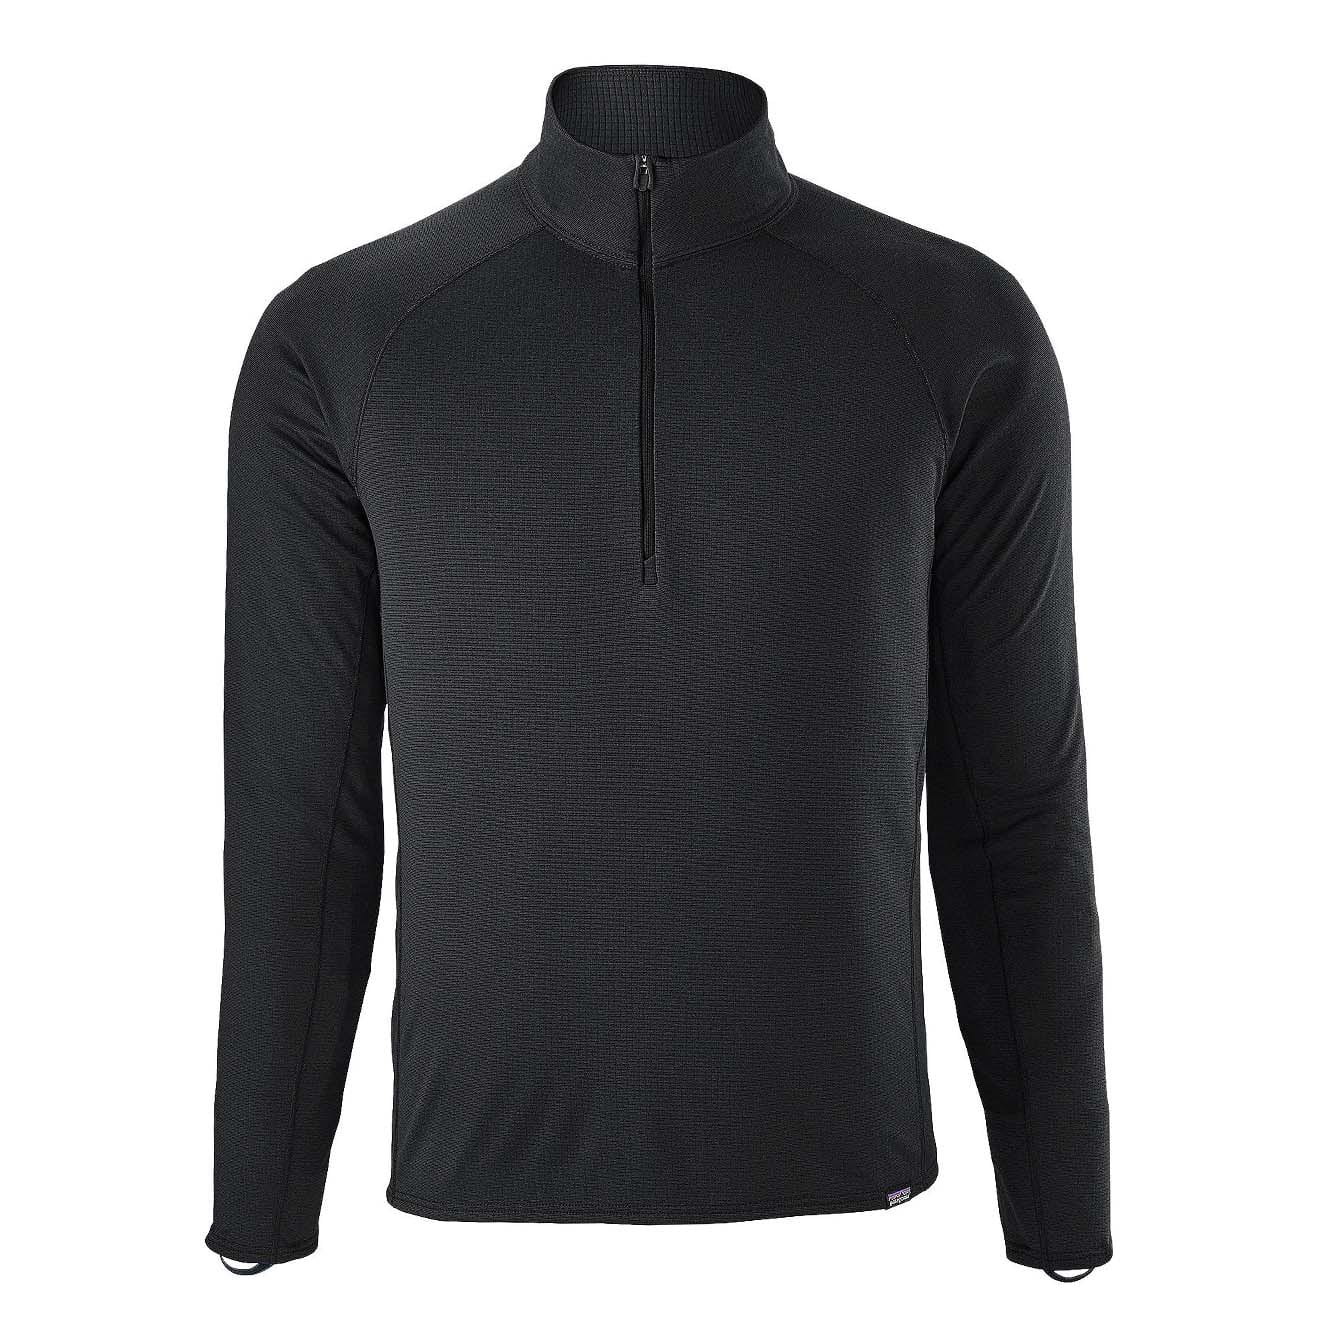 Details about Patagonia Capilene Midweight Zip Neck Baselayer Black -  CLEARANCE 99038a90e